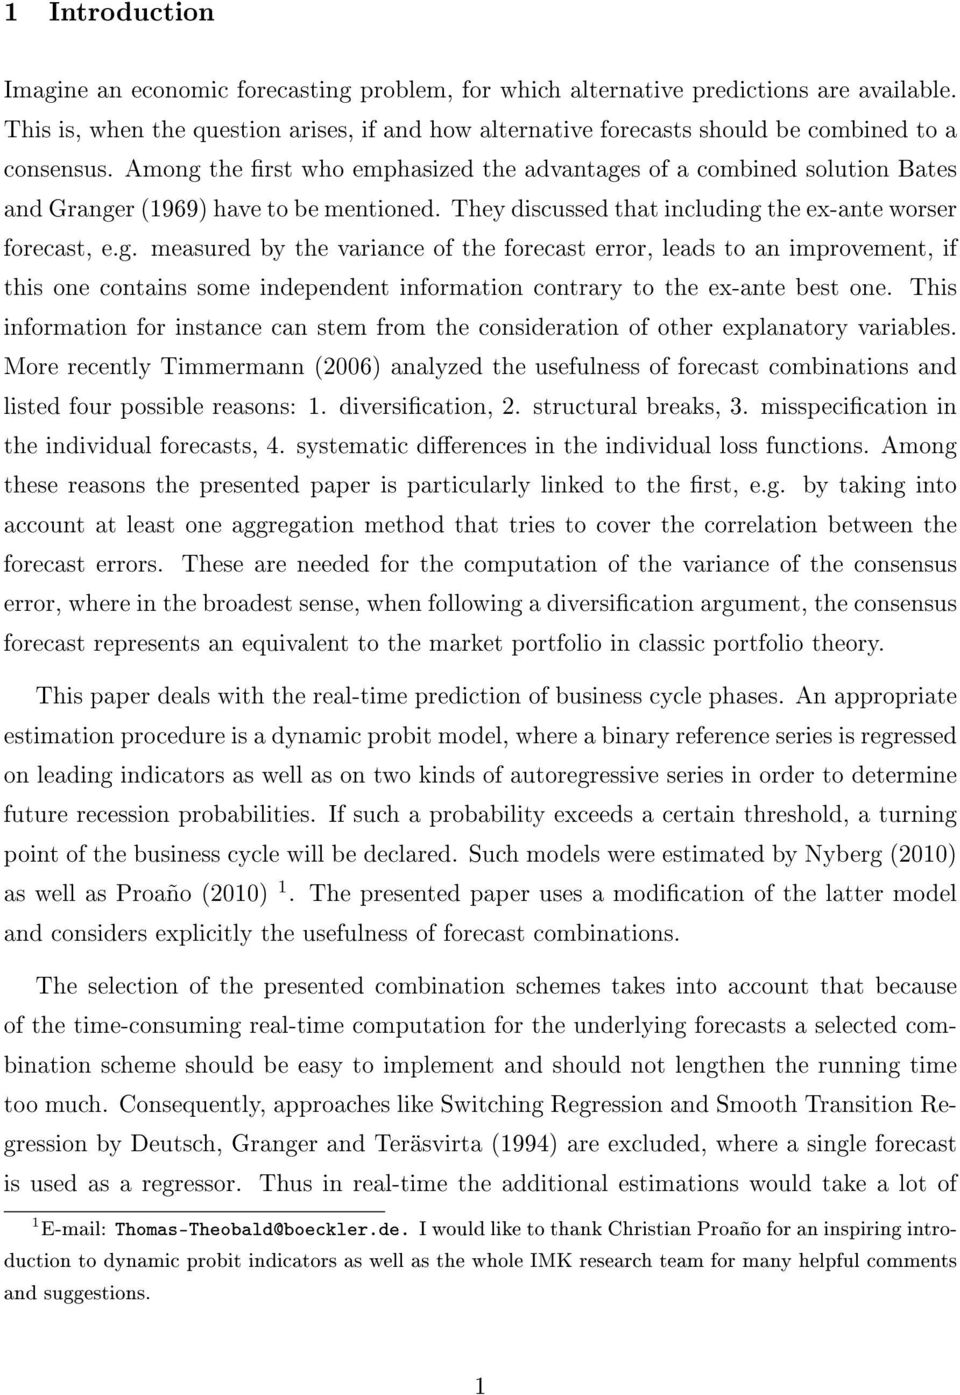 Among the rst who emphasized the advantages of a combined solution Bates and Granger (1969) have to be mentioned. They discussed that including the ex-ante worser forecast, e.g. measured by the variance of the forecast error, leads to an improvement, if this one contains some independent information contrary to the ex-ante best one.